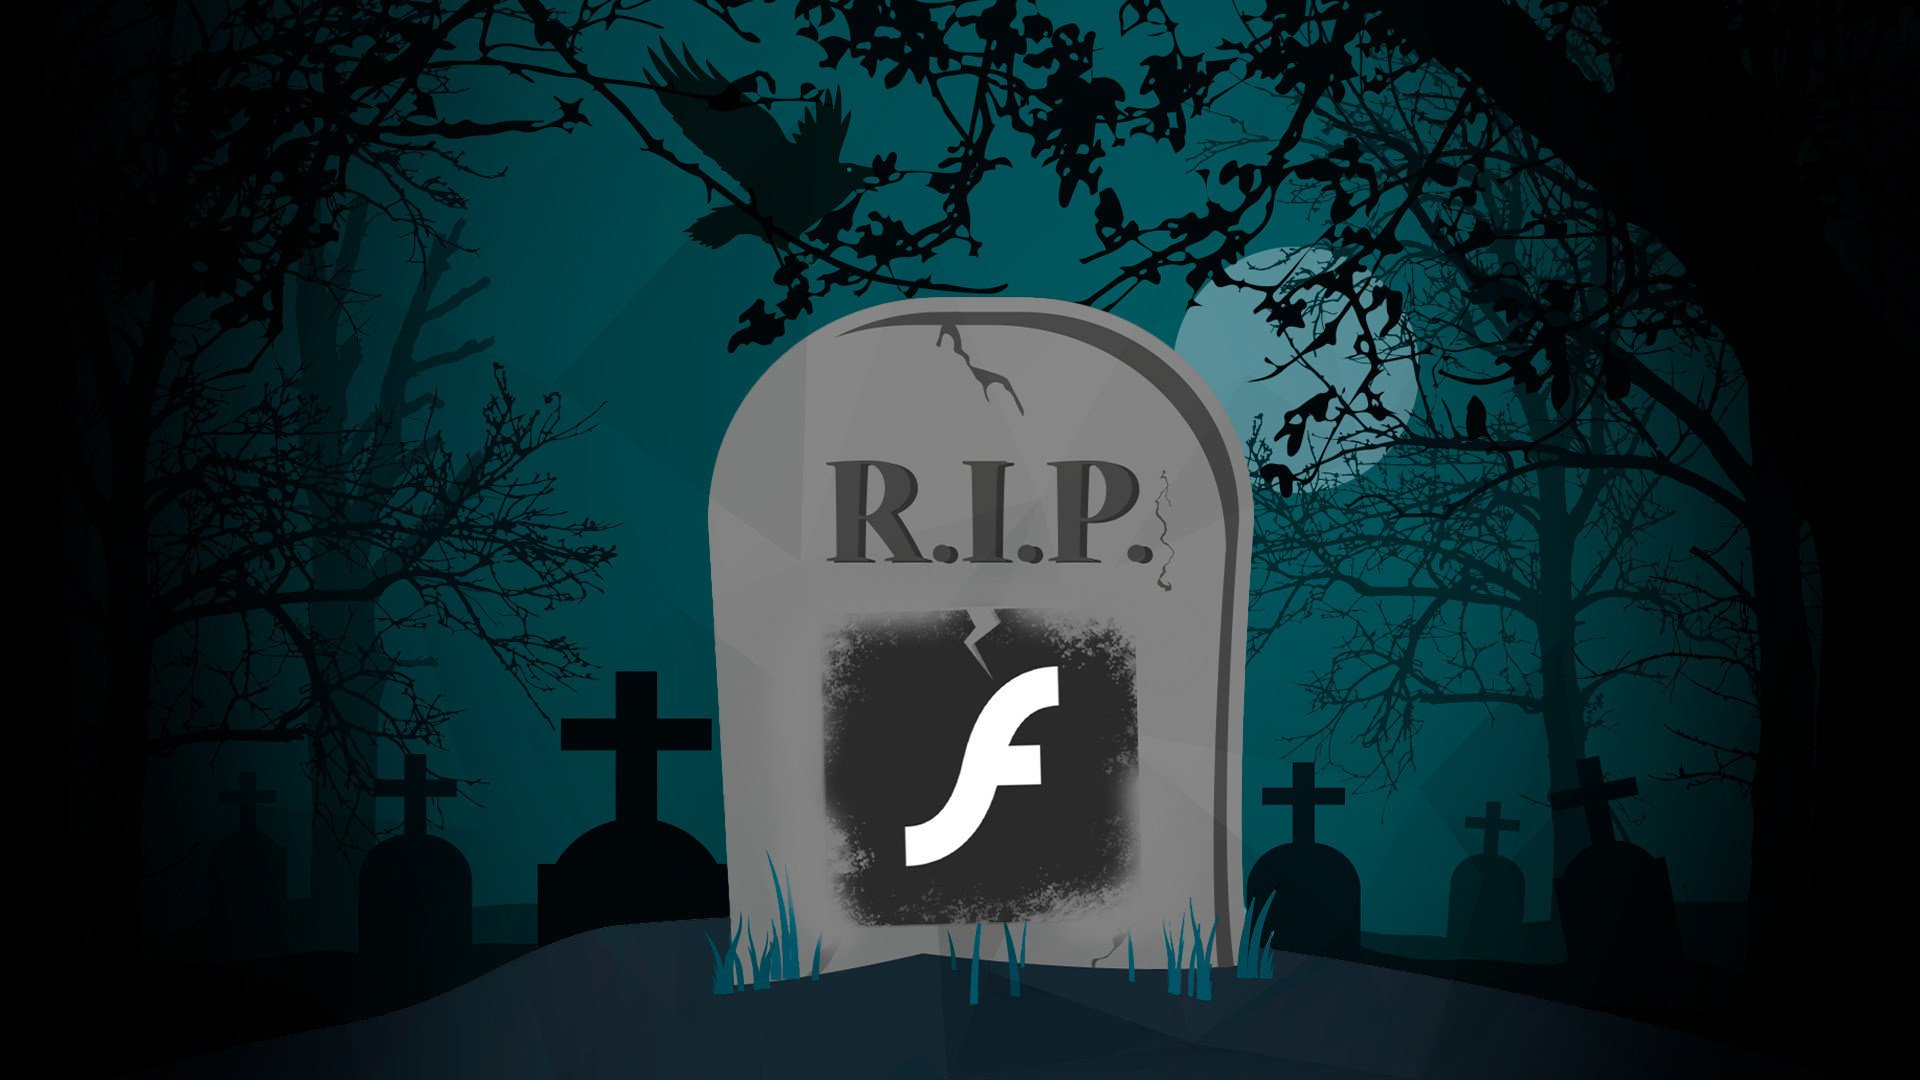 Flash, Adobe, Flash Player, Support-Ende, ende, Supportende, Tod, Adobe Flash, tot, Adobe Flash Player, RIP, Flash Ende, Falsh ist tot